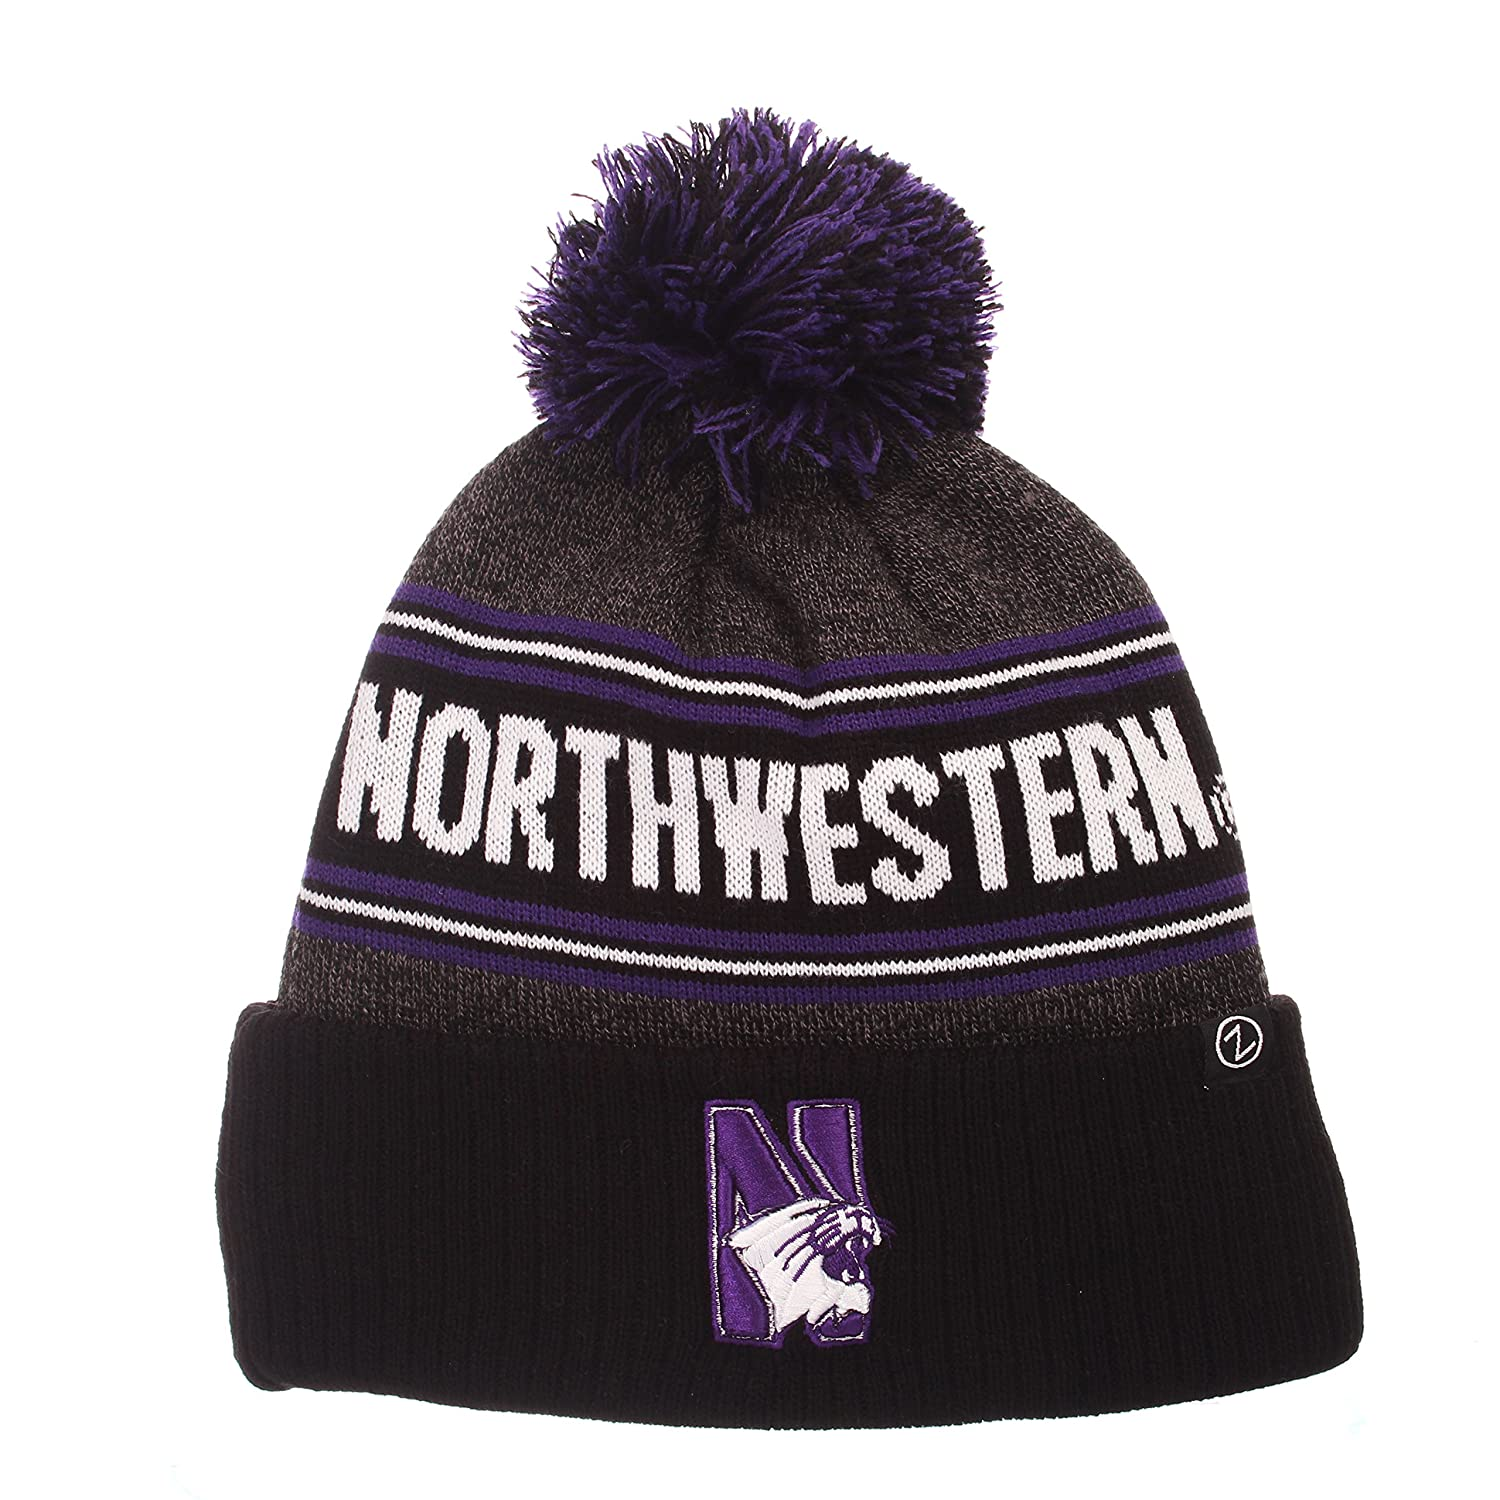 689e51e95 Amazon.com   NCAA Northwestern Wildcats Men s End Zone Knit Beanie ...